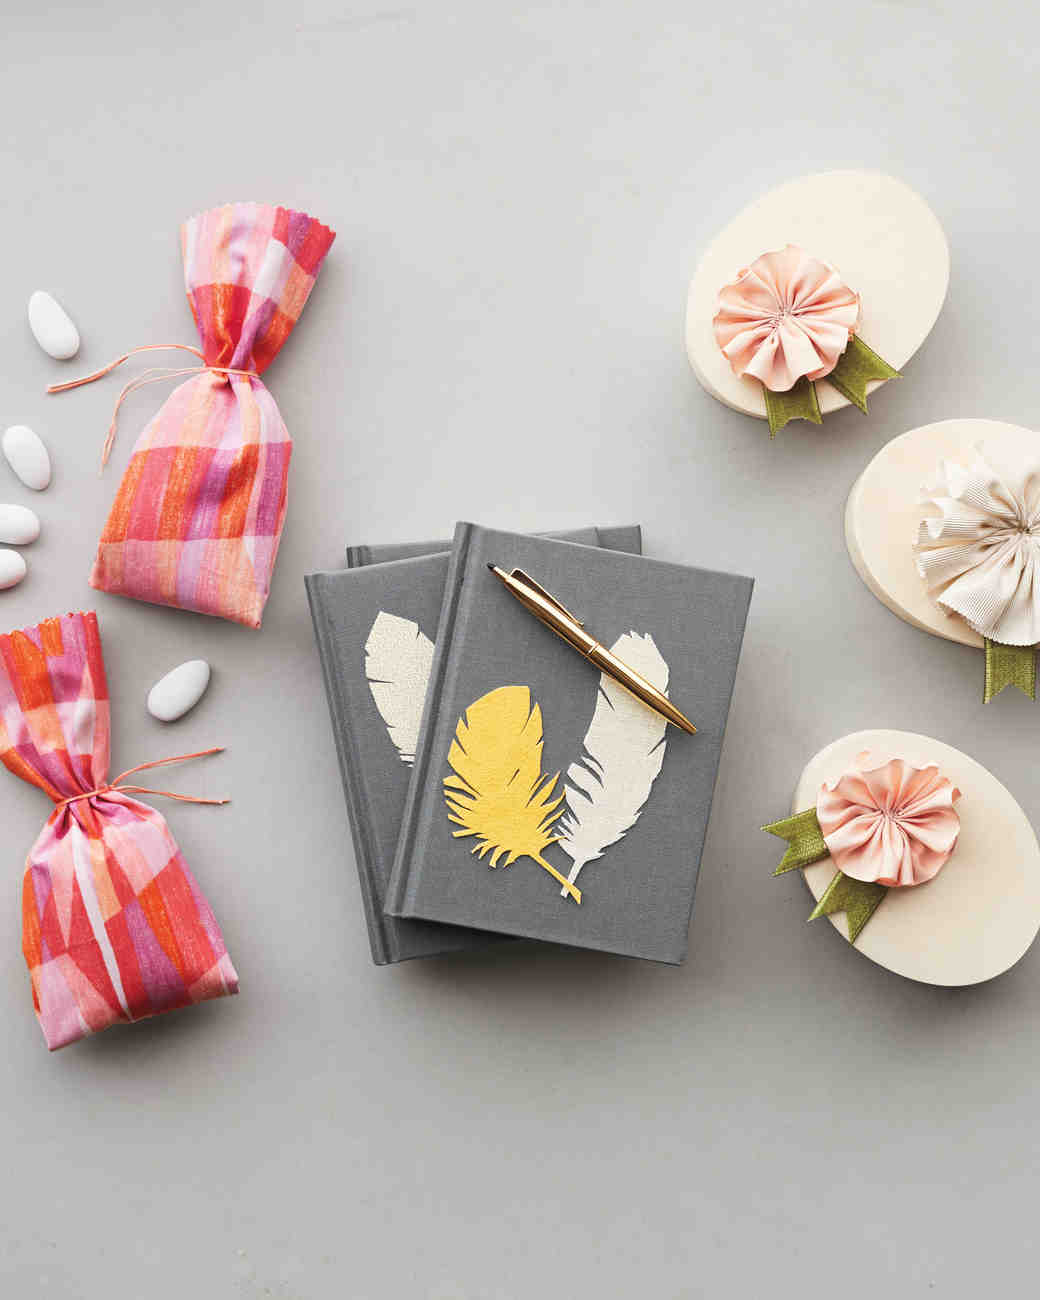 Ideas For Wedding Favors For Guests: Give Fabric The DIY Treatment! 3 Wedding Favors That Will